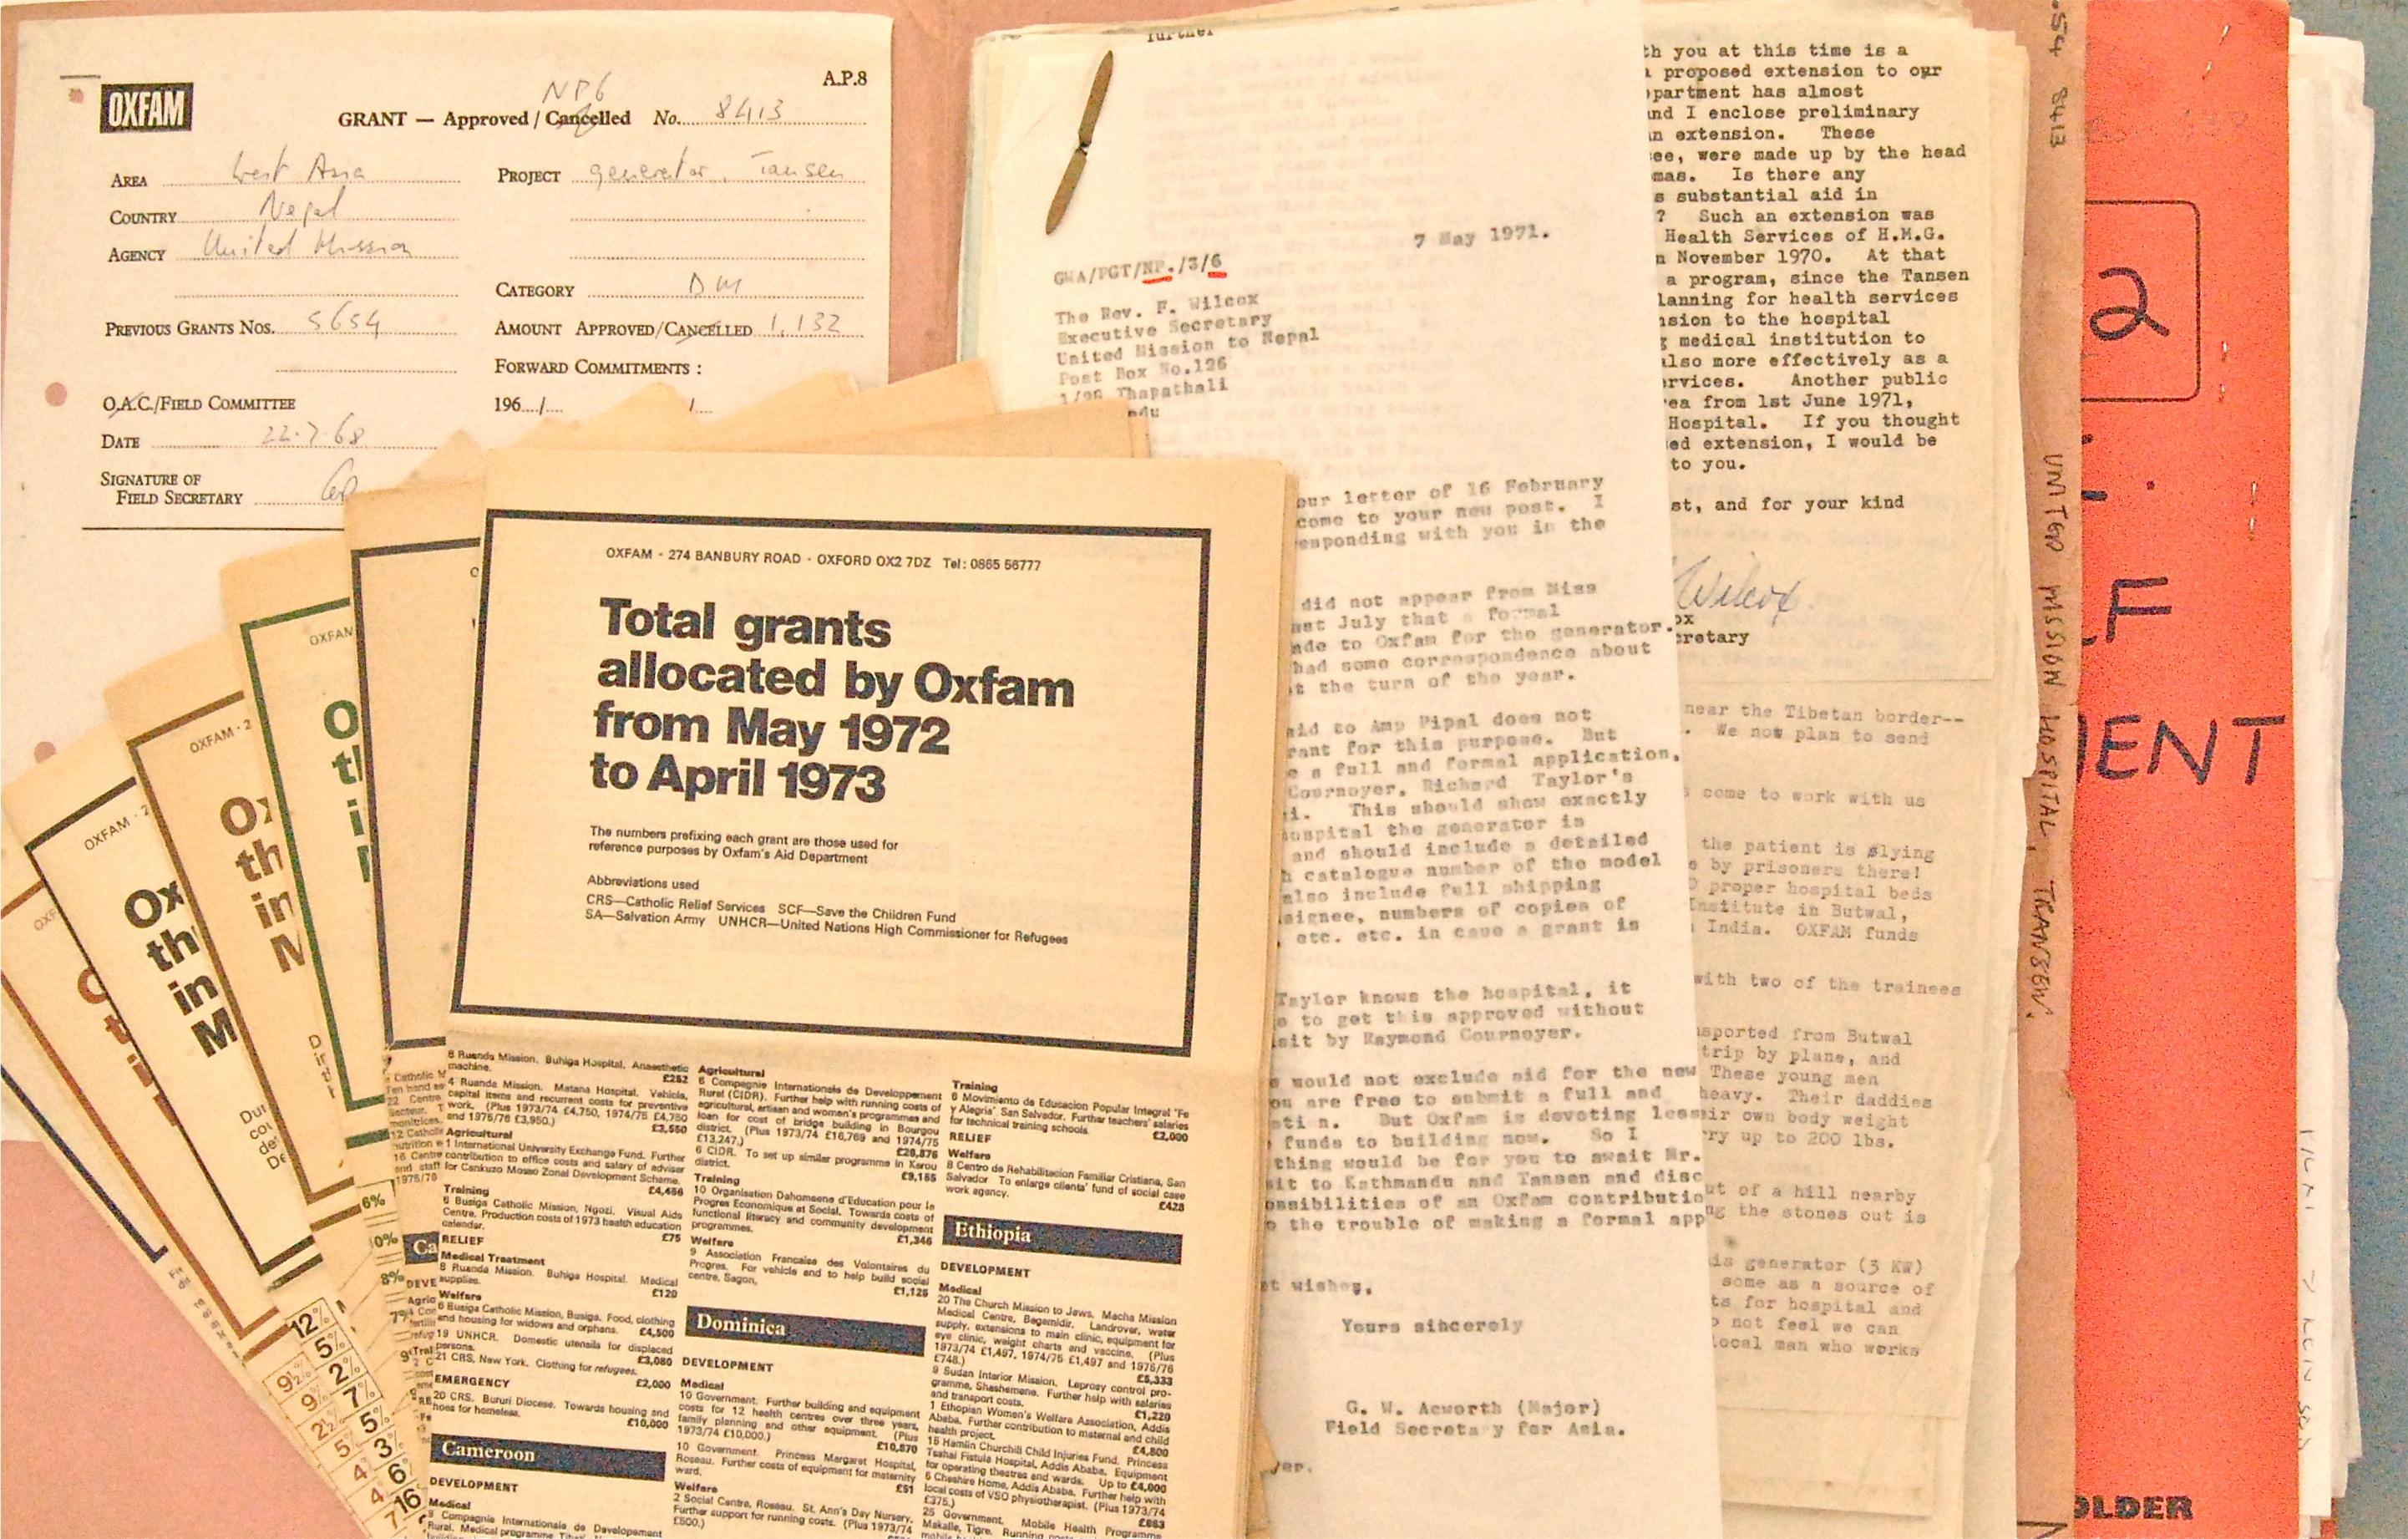 File relating to a grant made in 1968 to the United Mission Hospital, Tansen, Nepal, and published annual lists detailing grants made (Oxfam Archive, Bodleian Library)